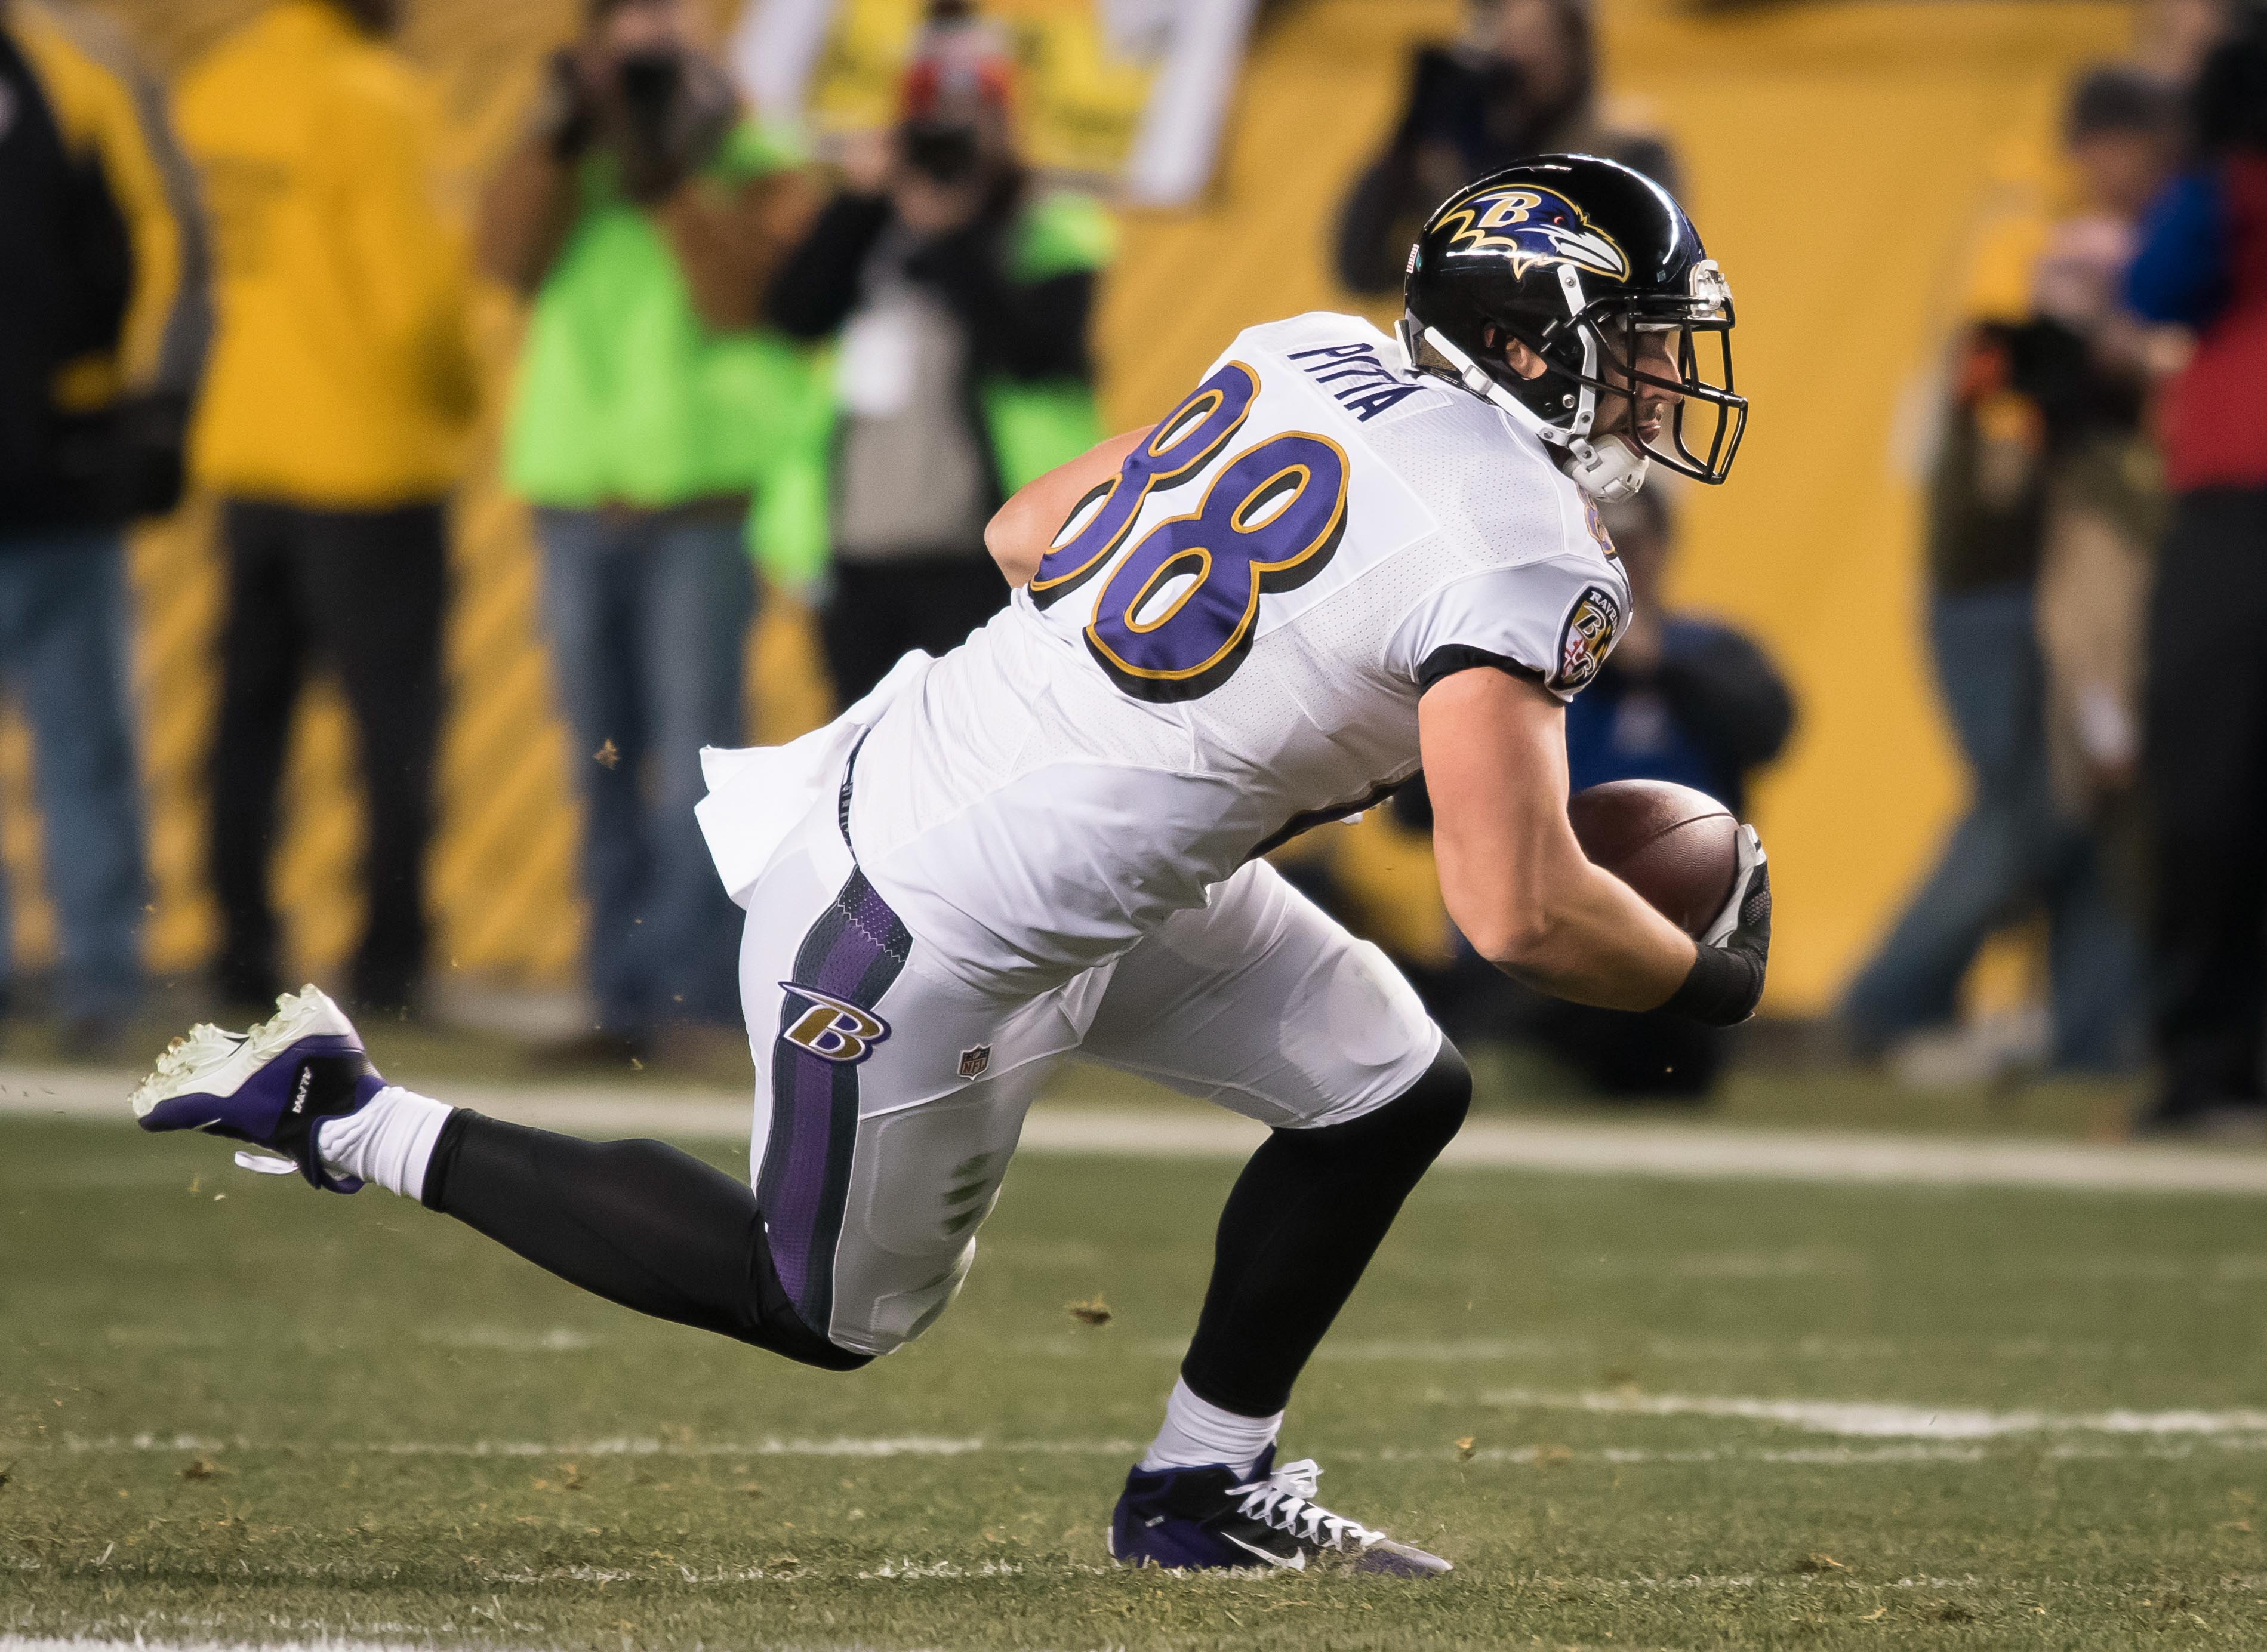 9785760-nfl-baltimore-ravens-at-pittsburgh-steelers-1